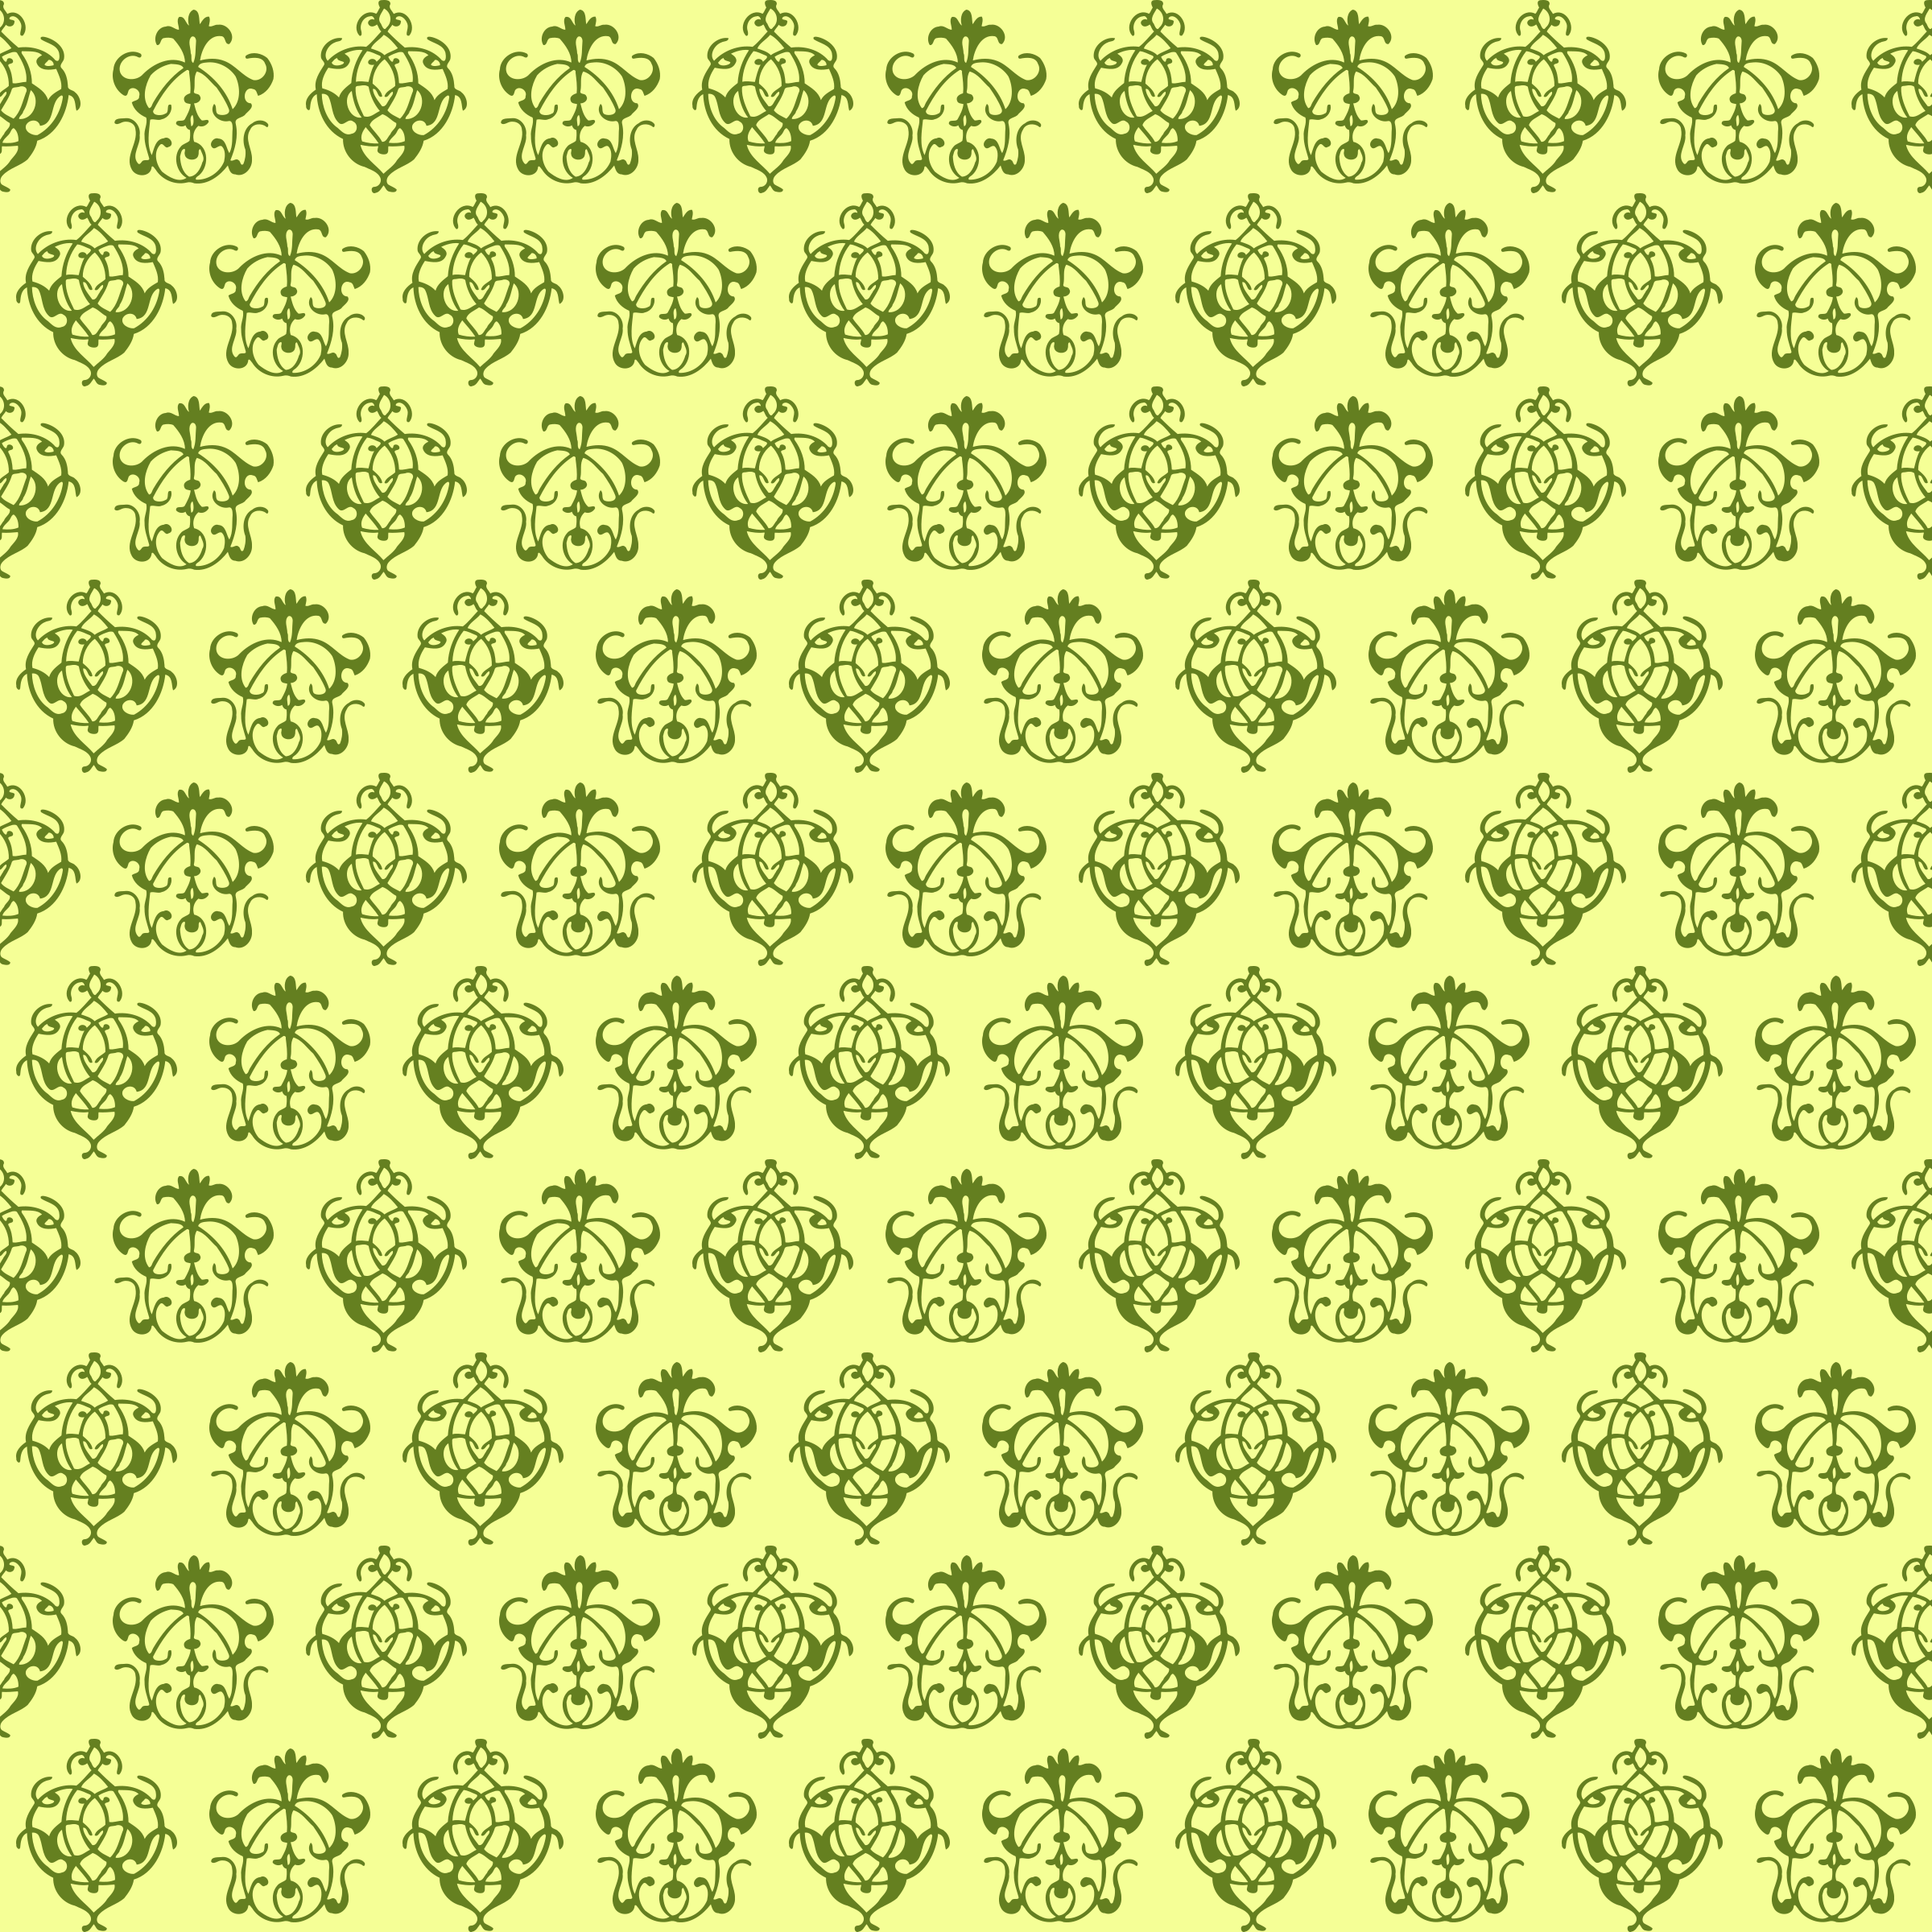 Background pattern 100 by Firkin